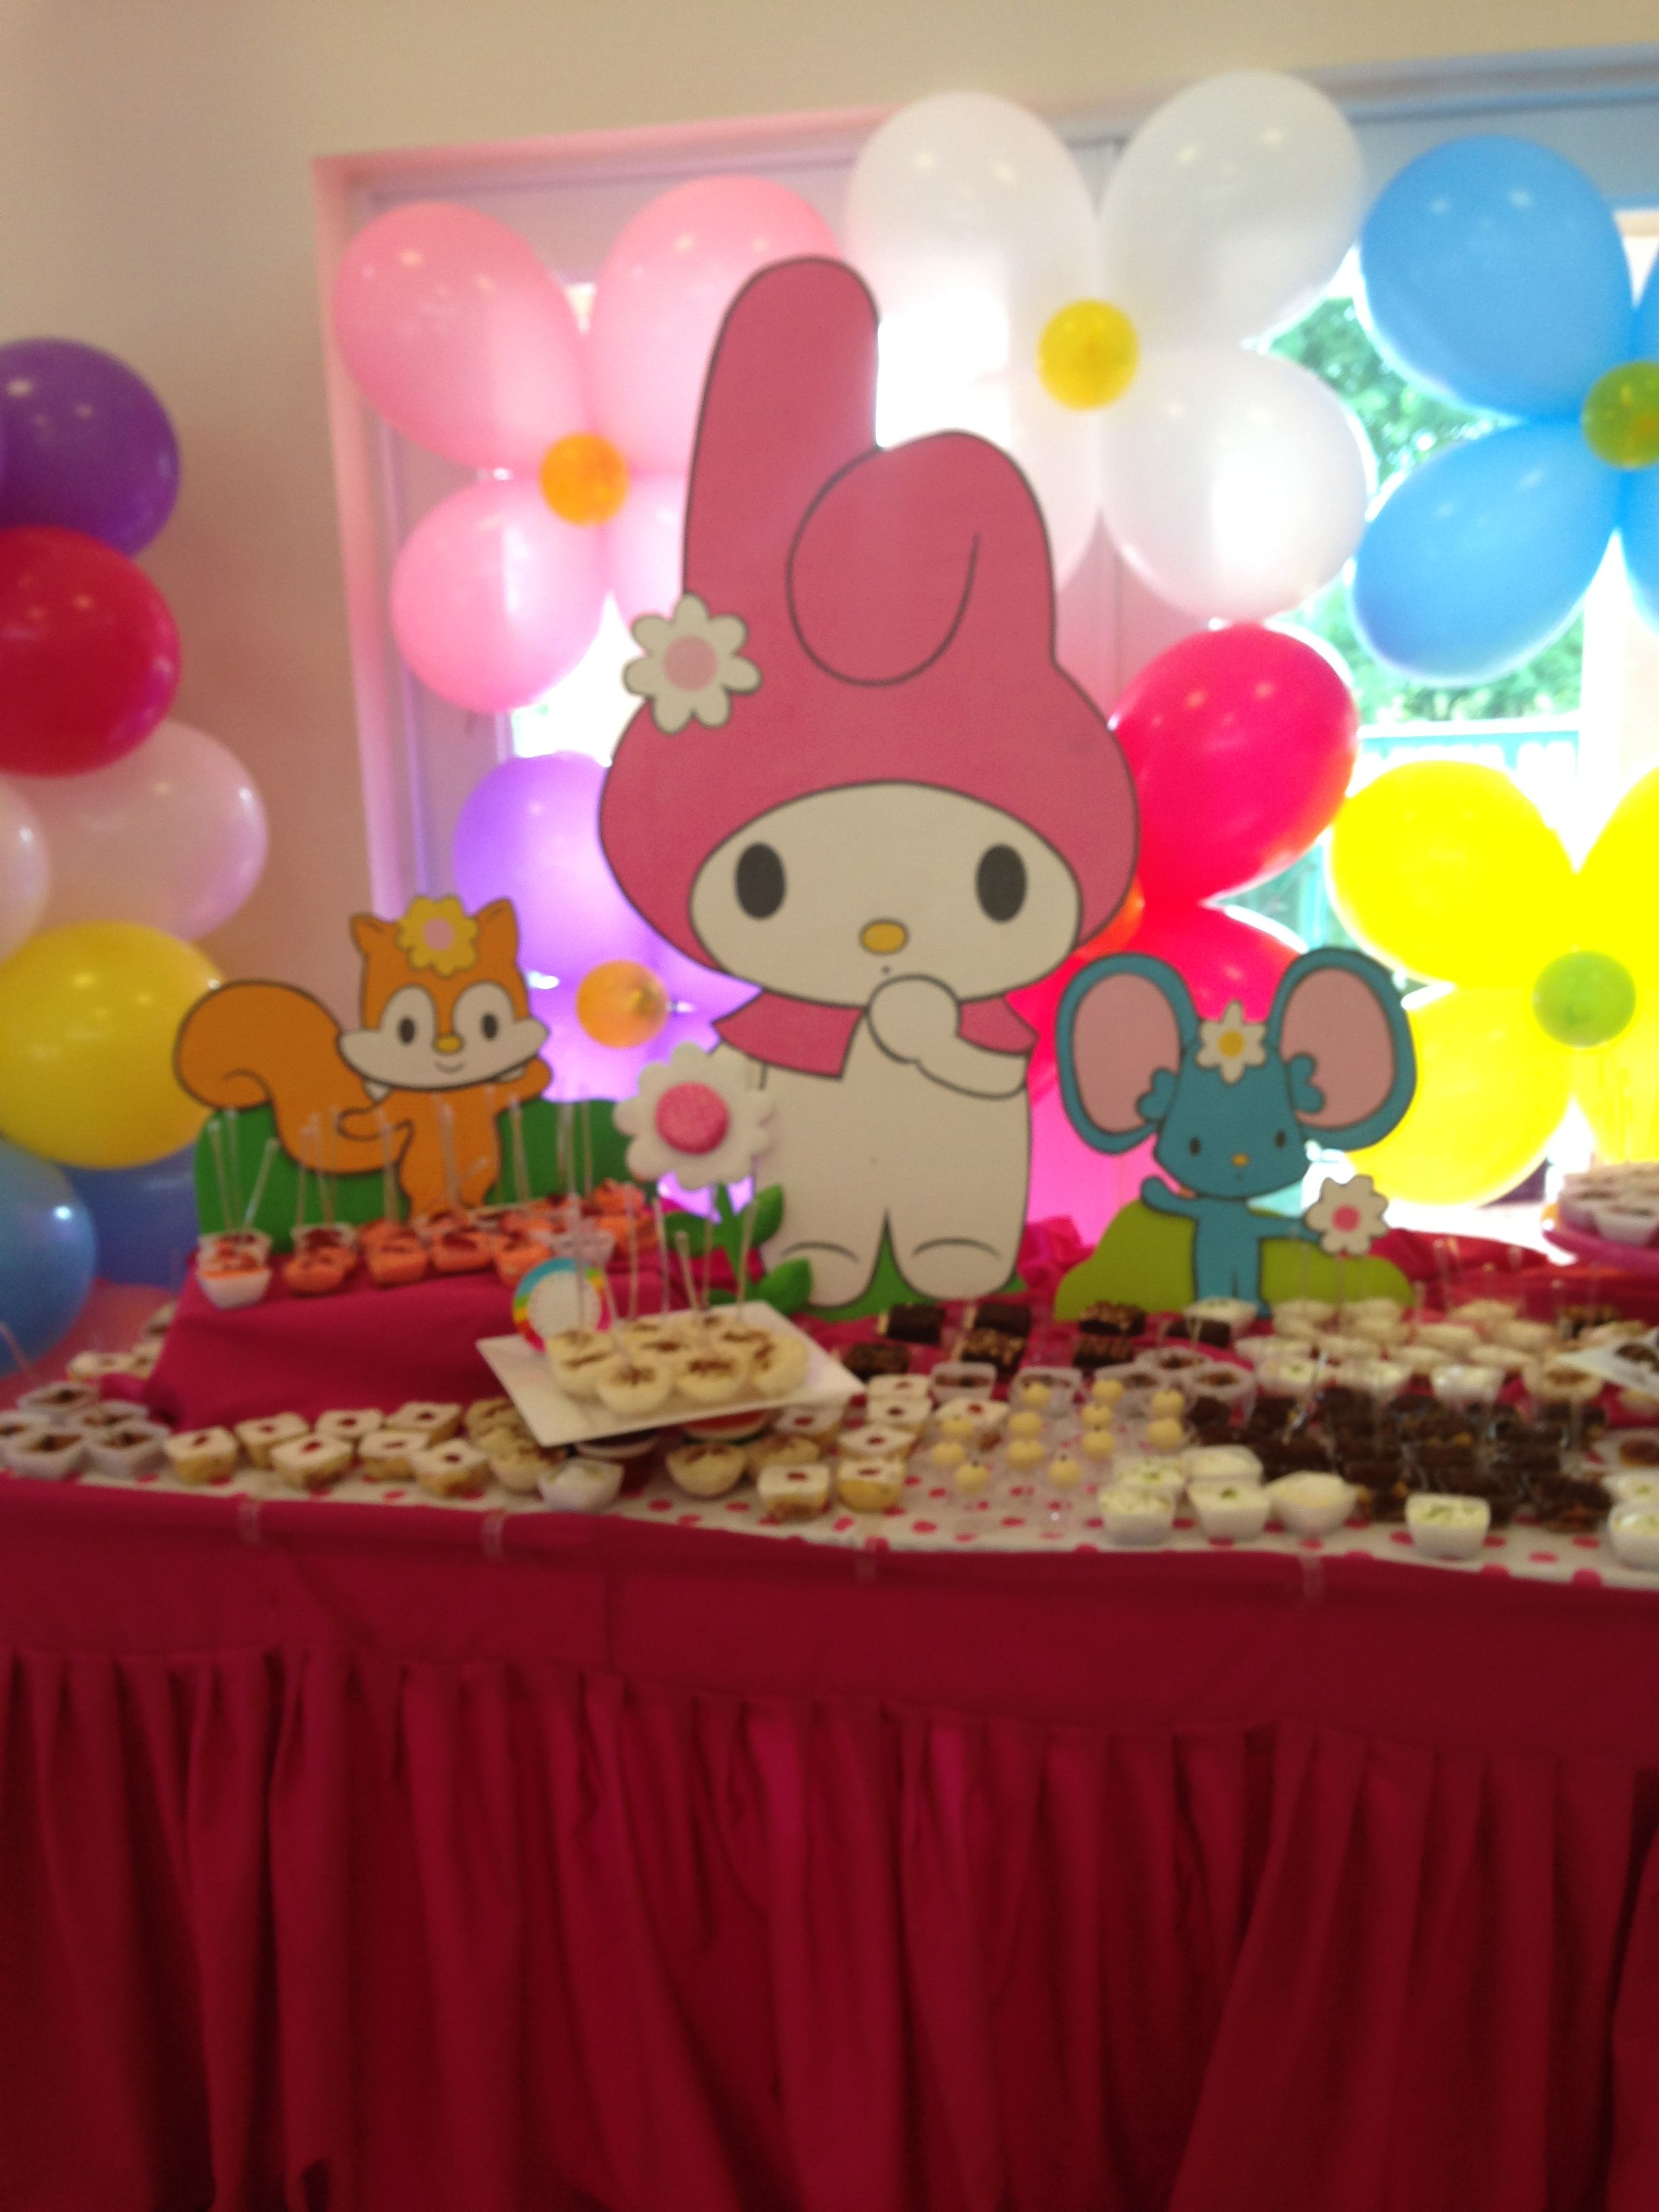 My Melody Sanrio Characters Ideas Para Fiestas 4th Birthday Parties